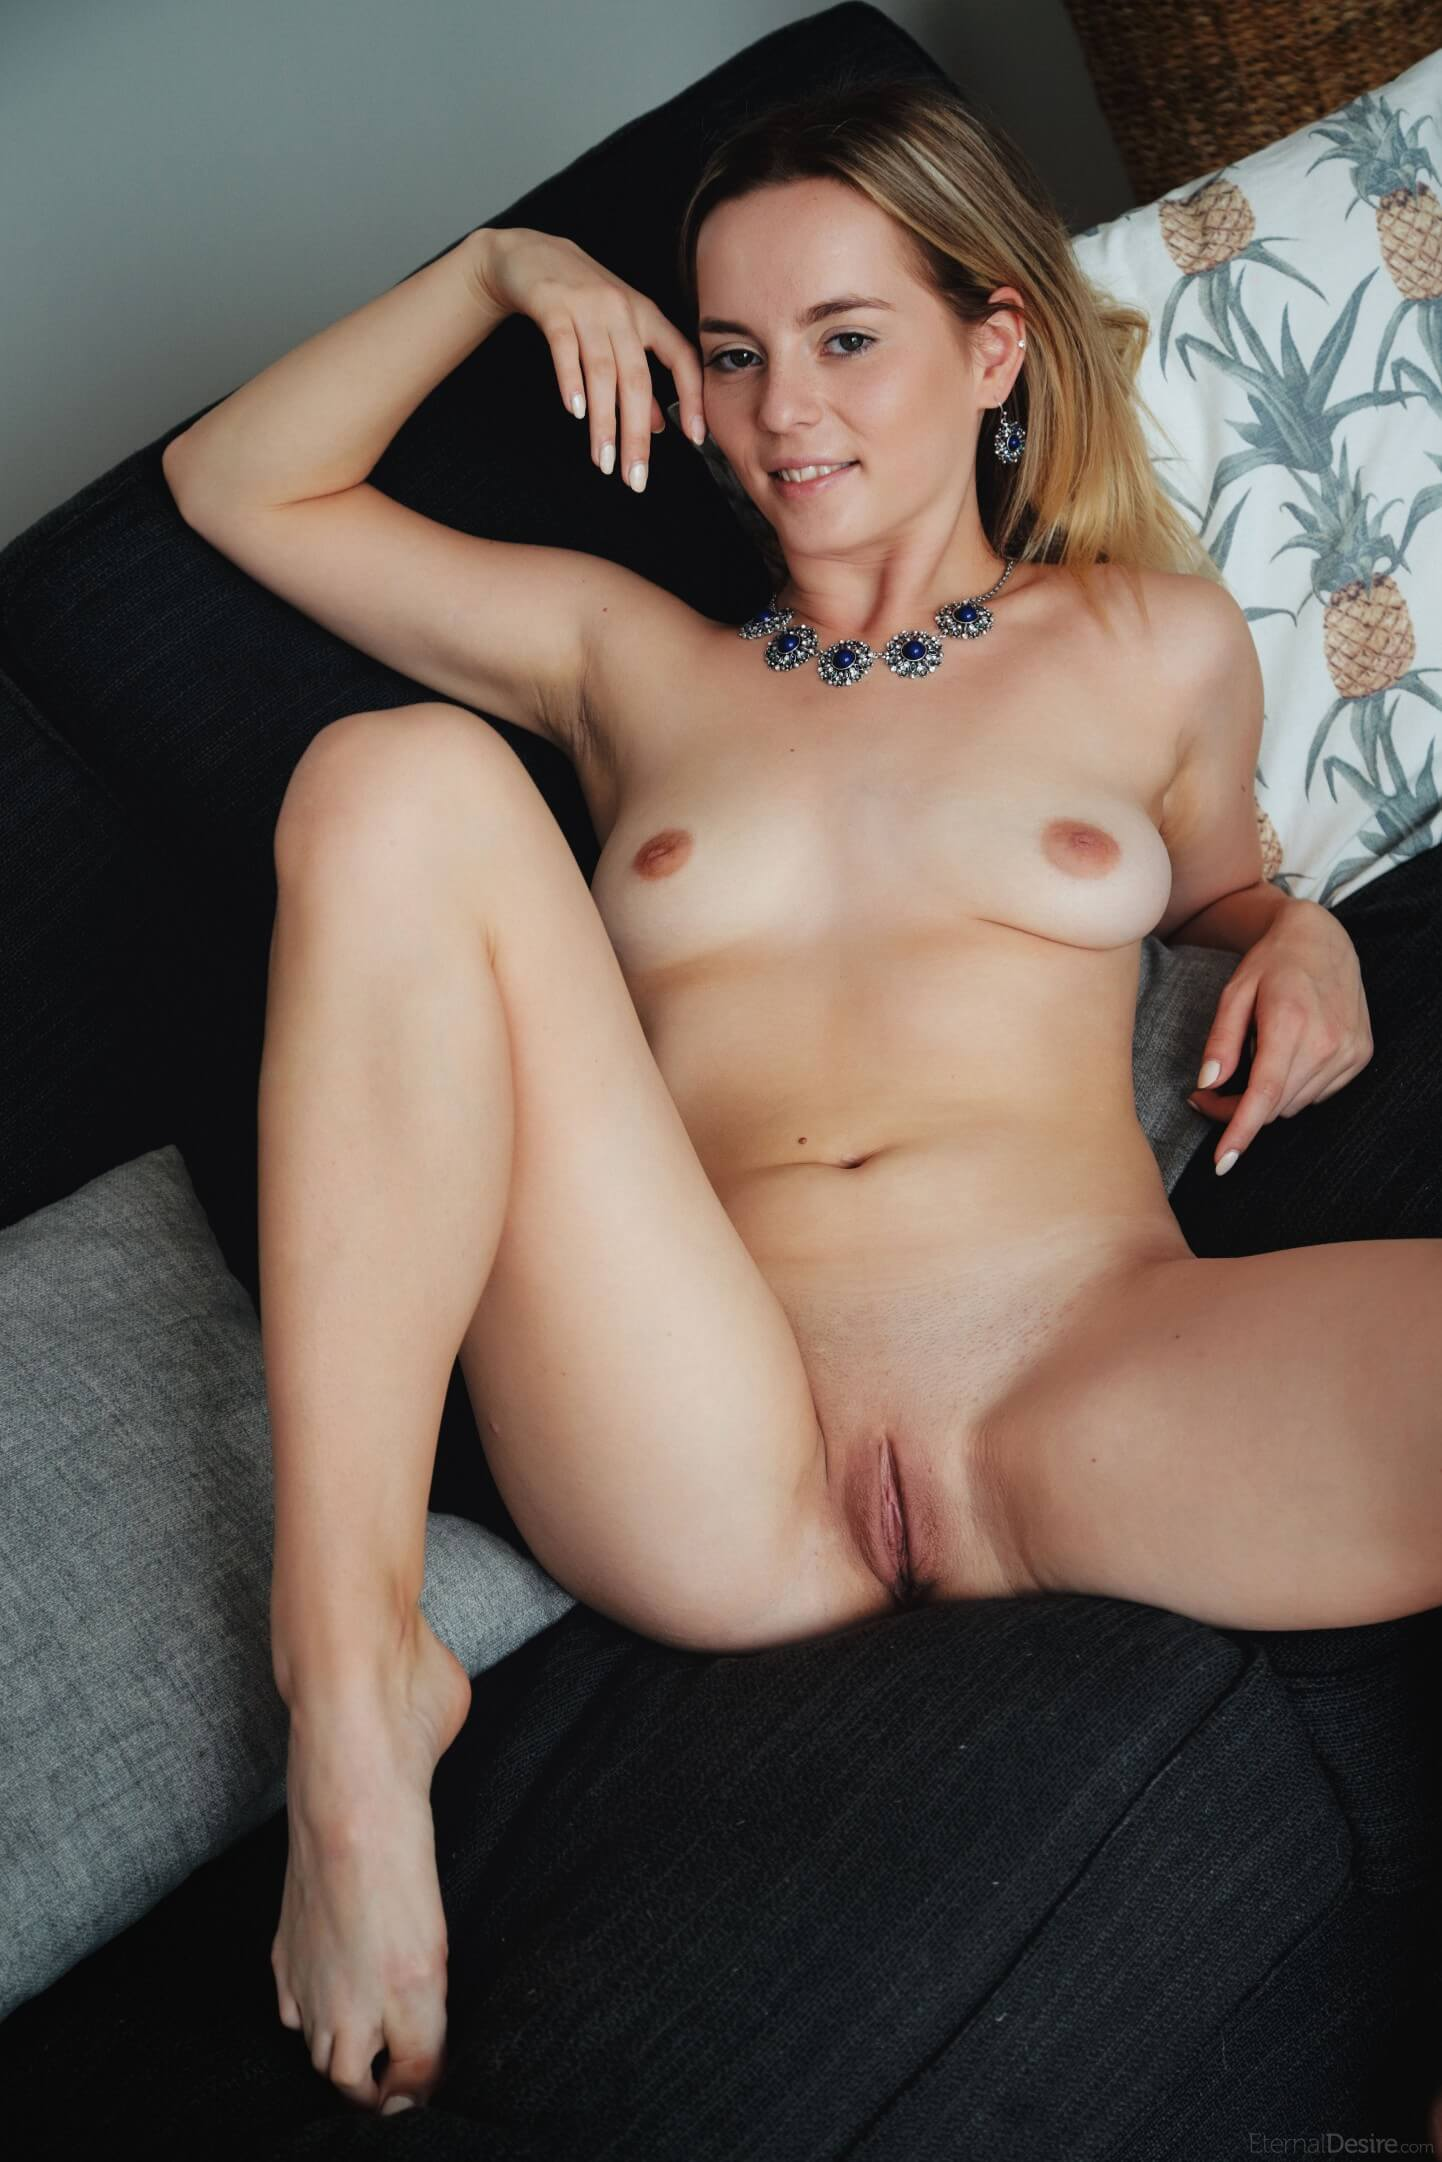 EternalDesire erotic model Susana Gil nude 9